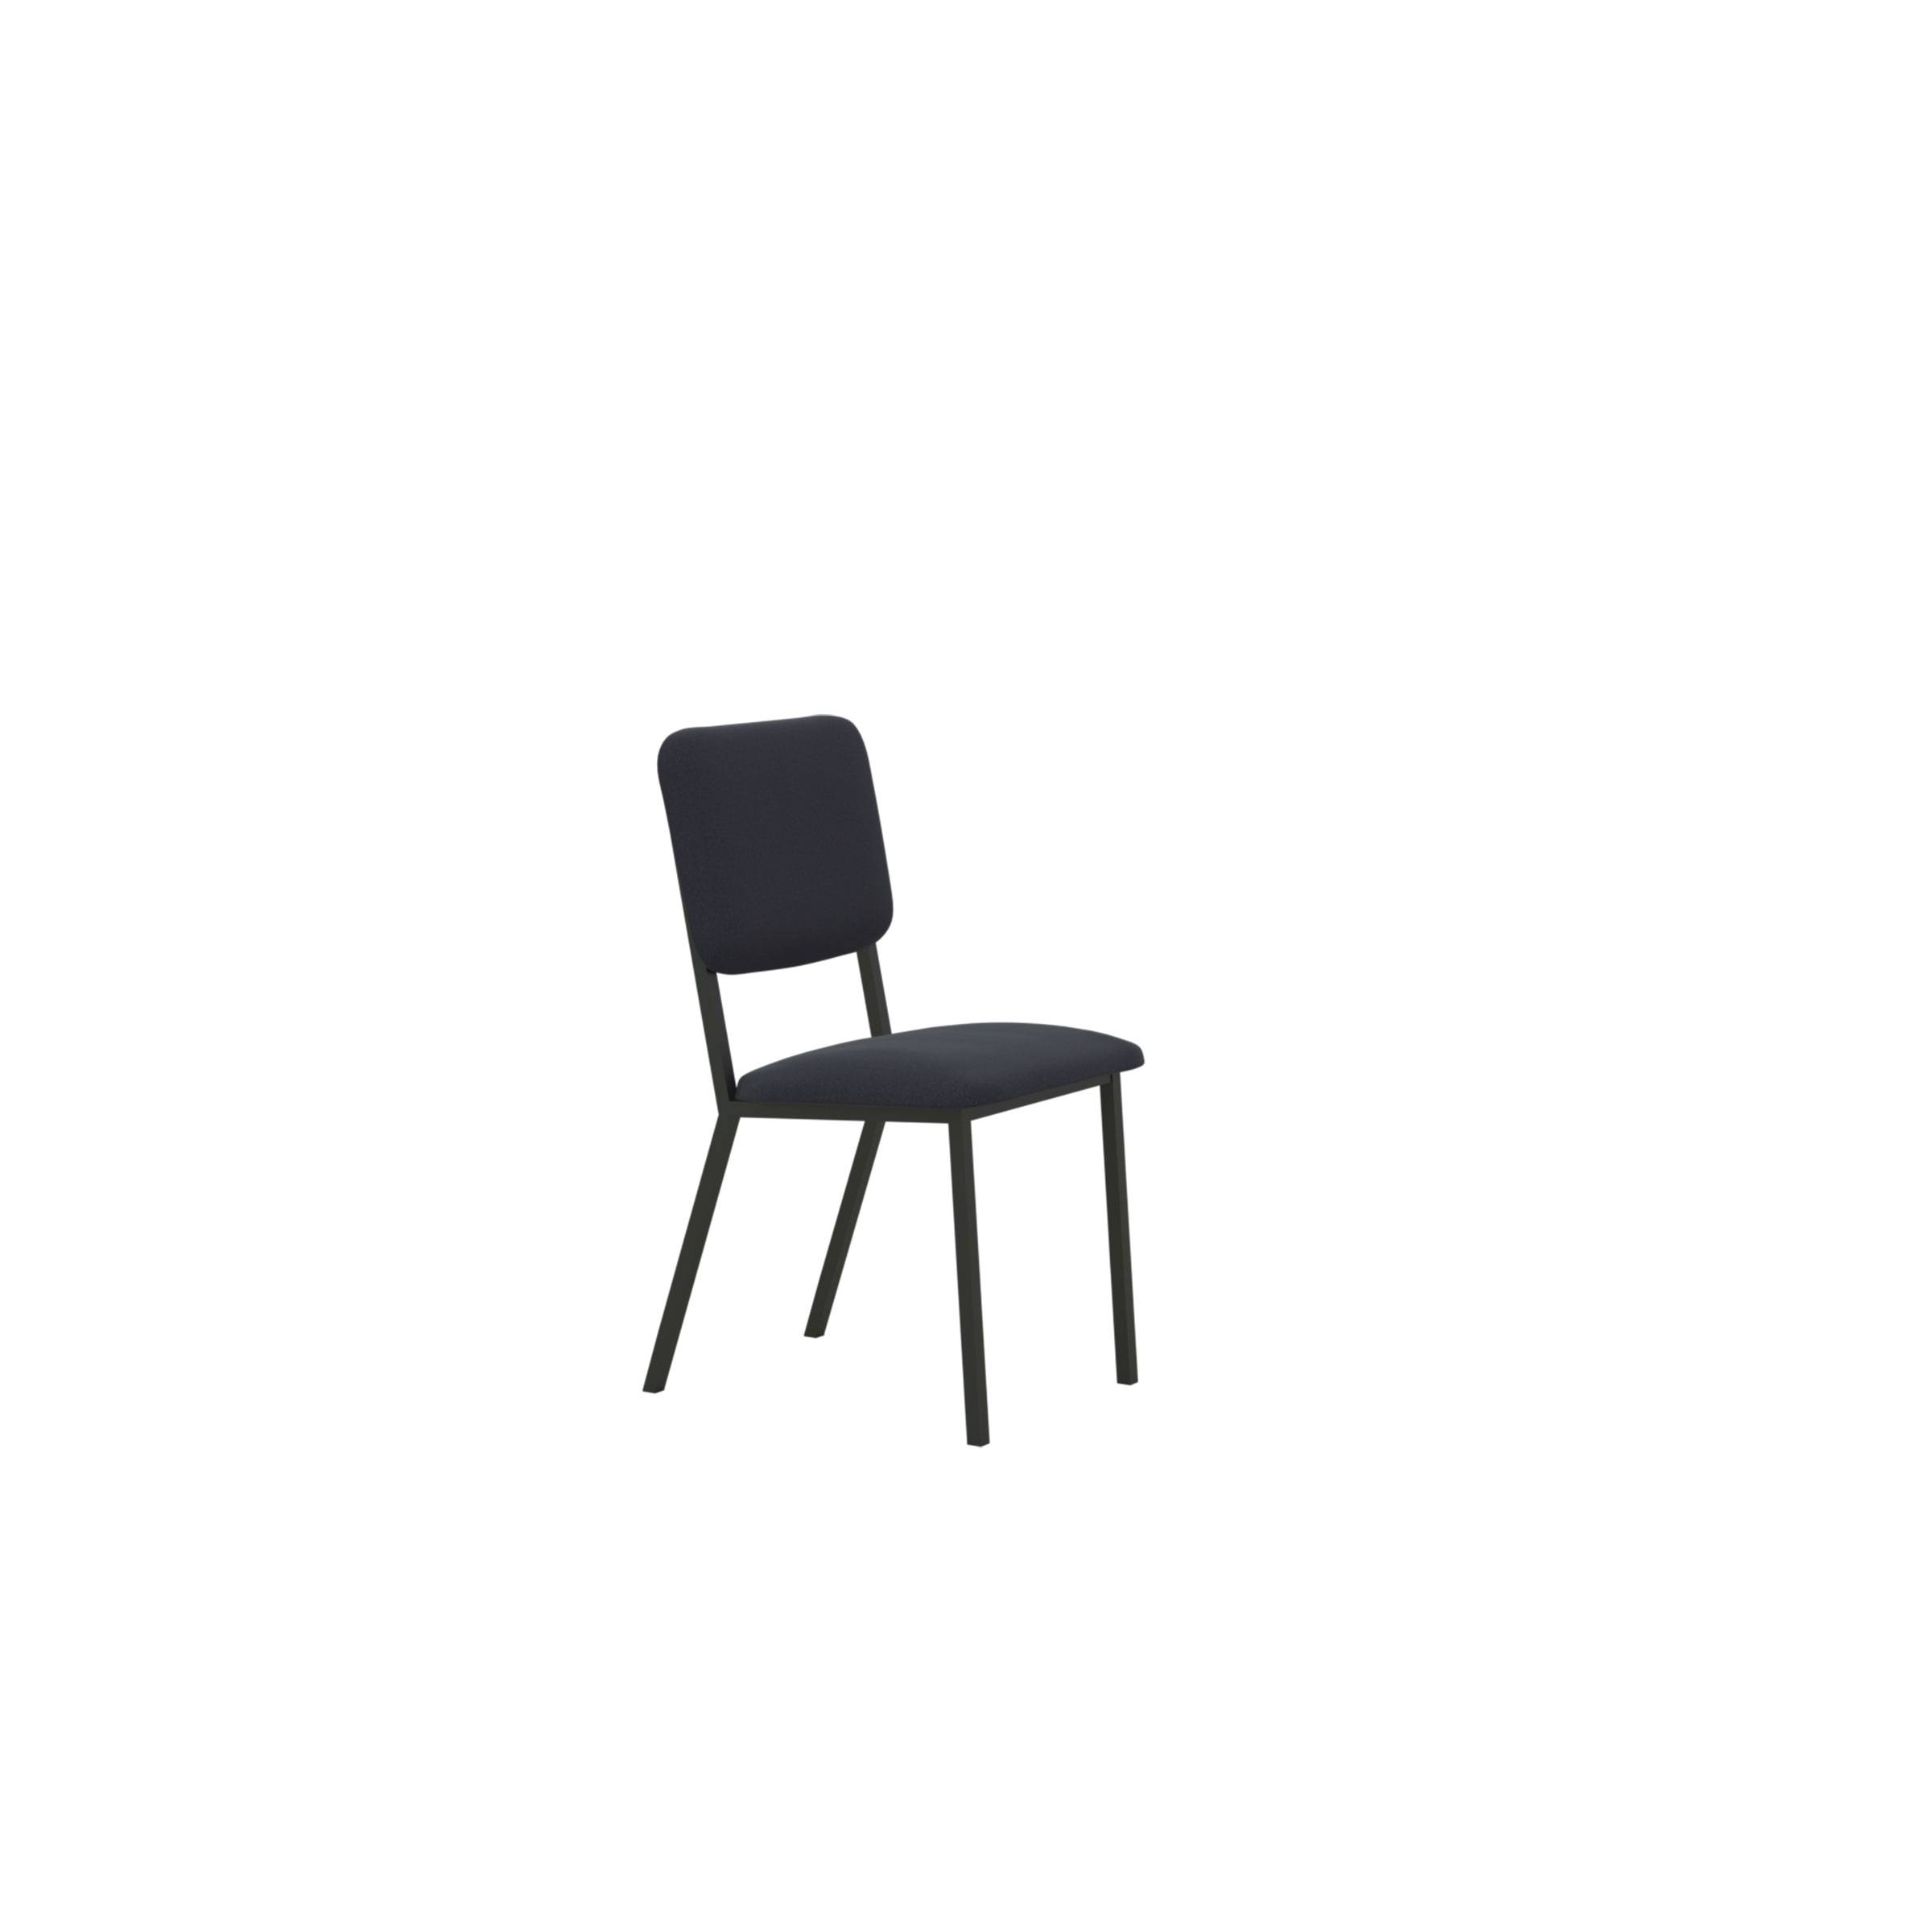 Co Chair zonder armleuning